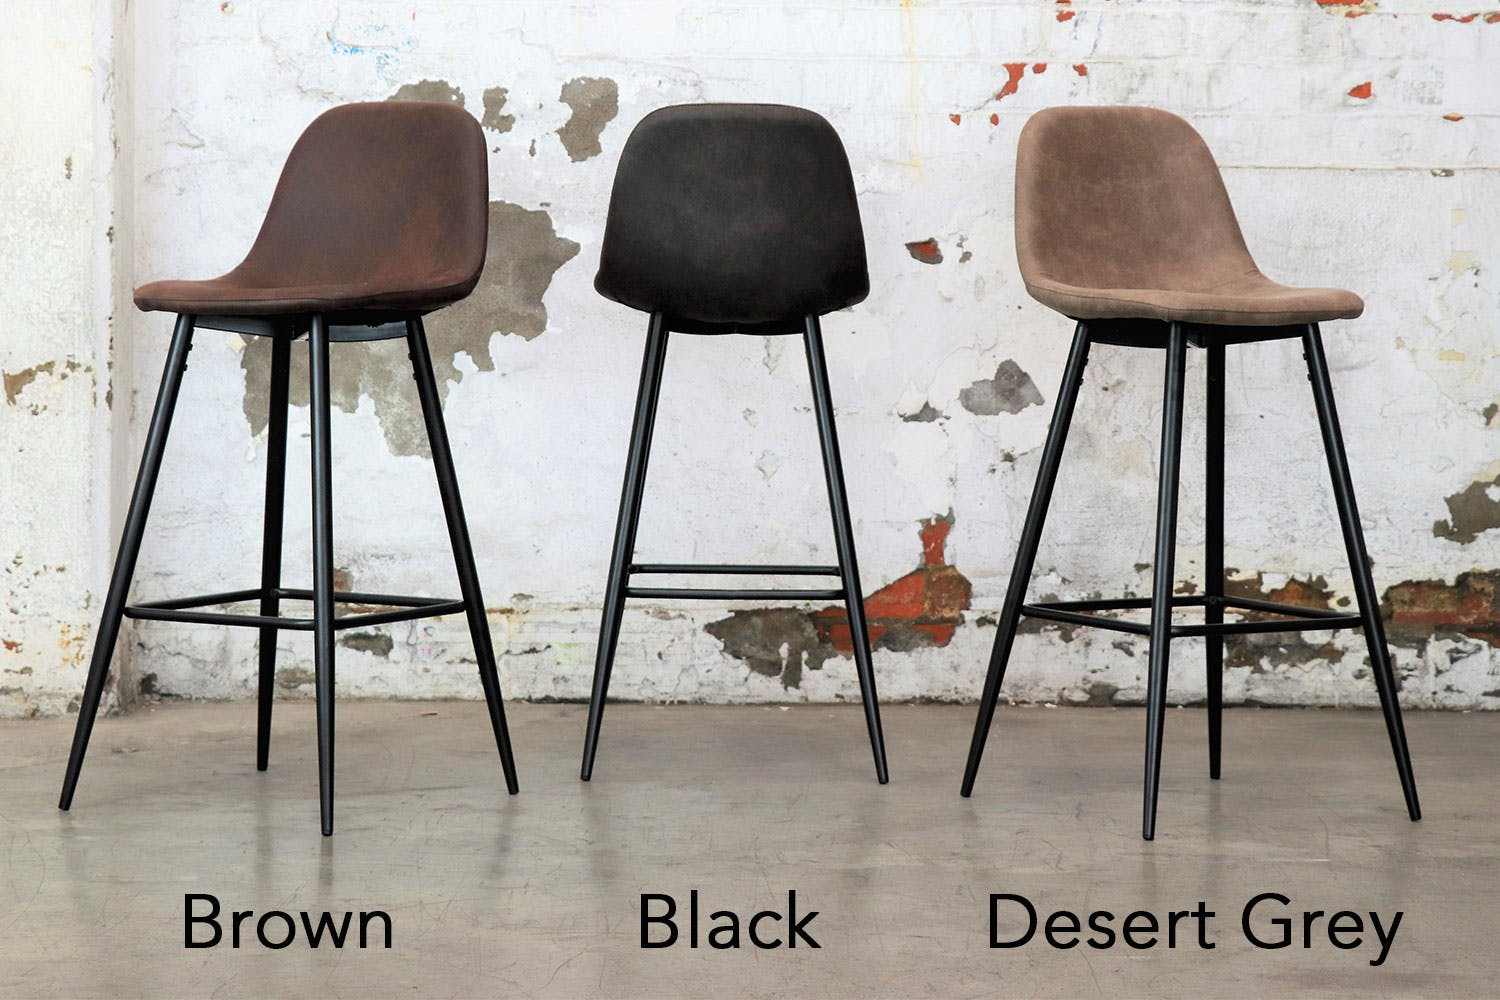 Texas Tall Bar Stool By Paulack Furniture Harvey Norman New